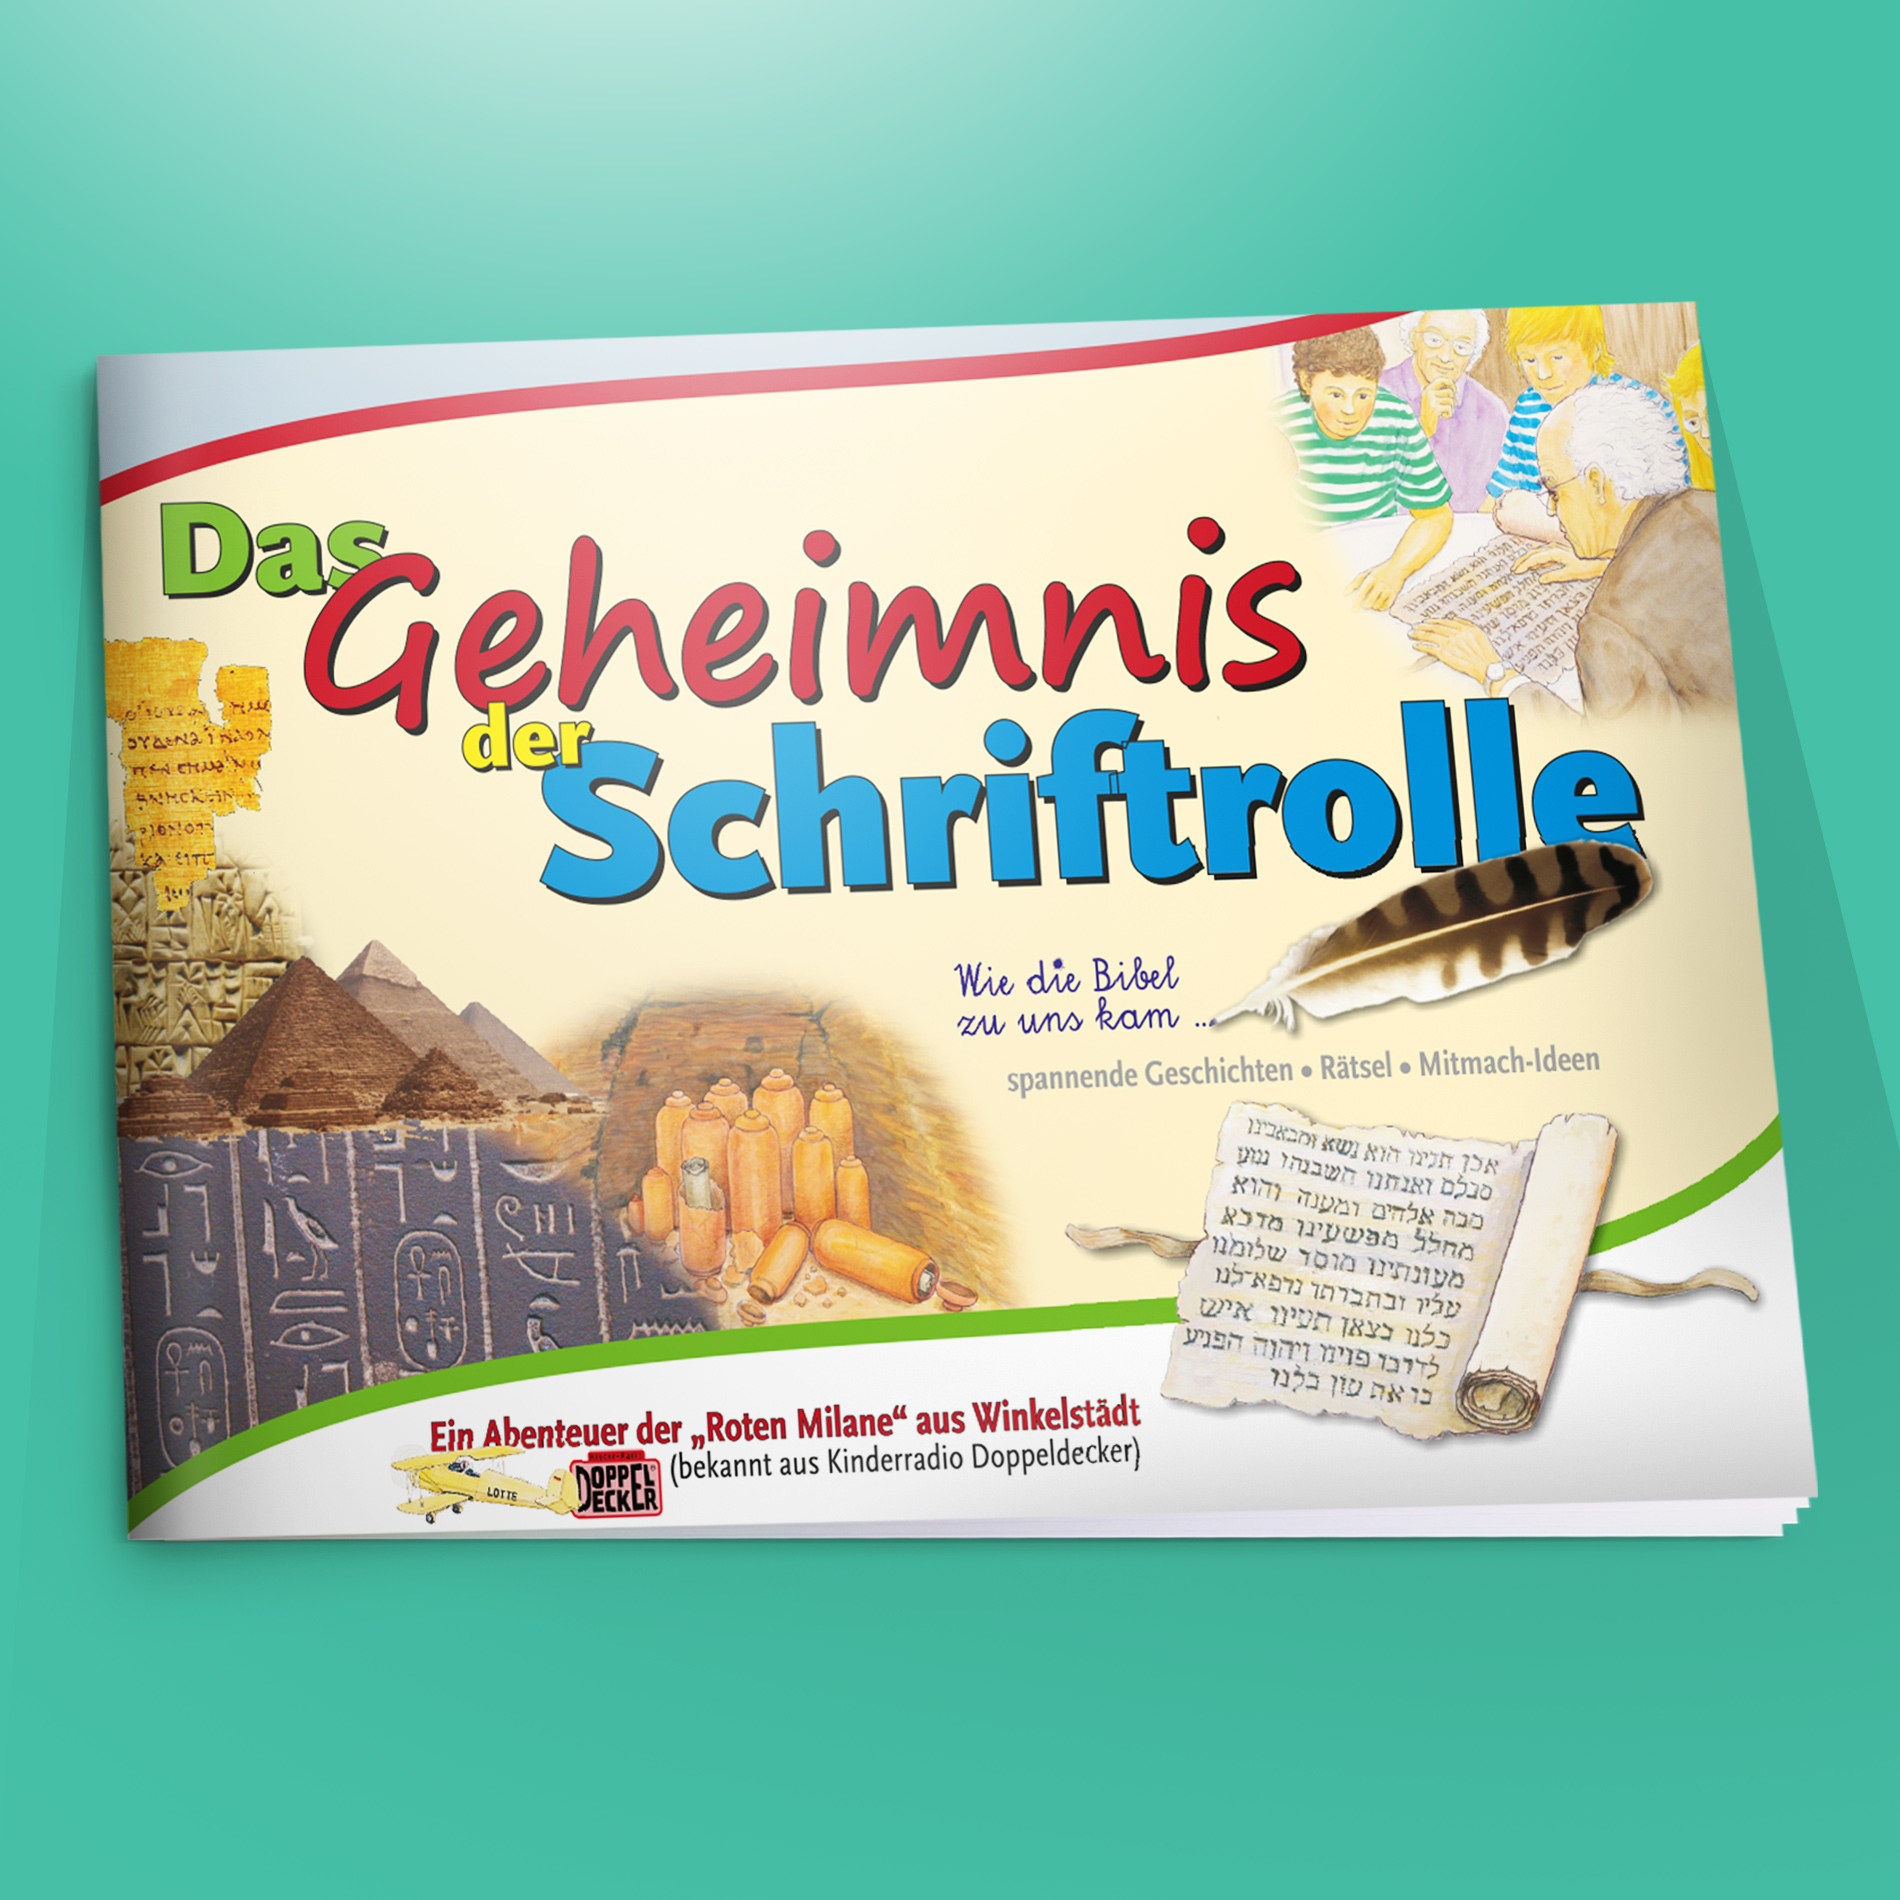 Schriftrolle